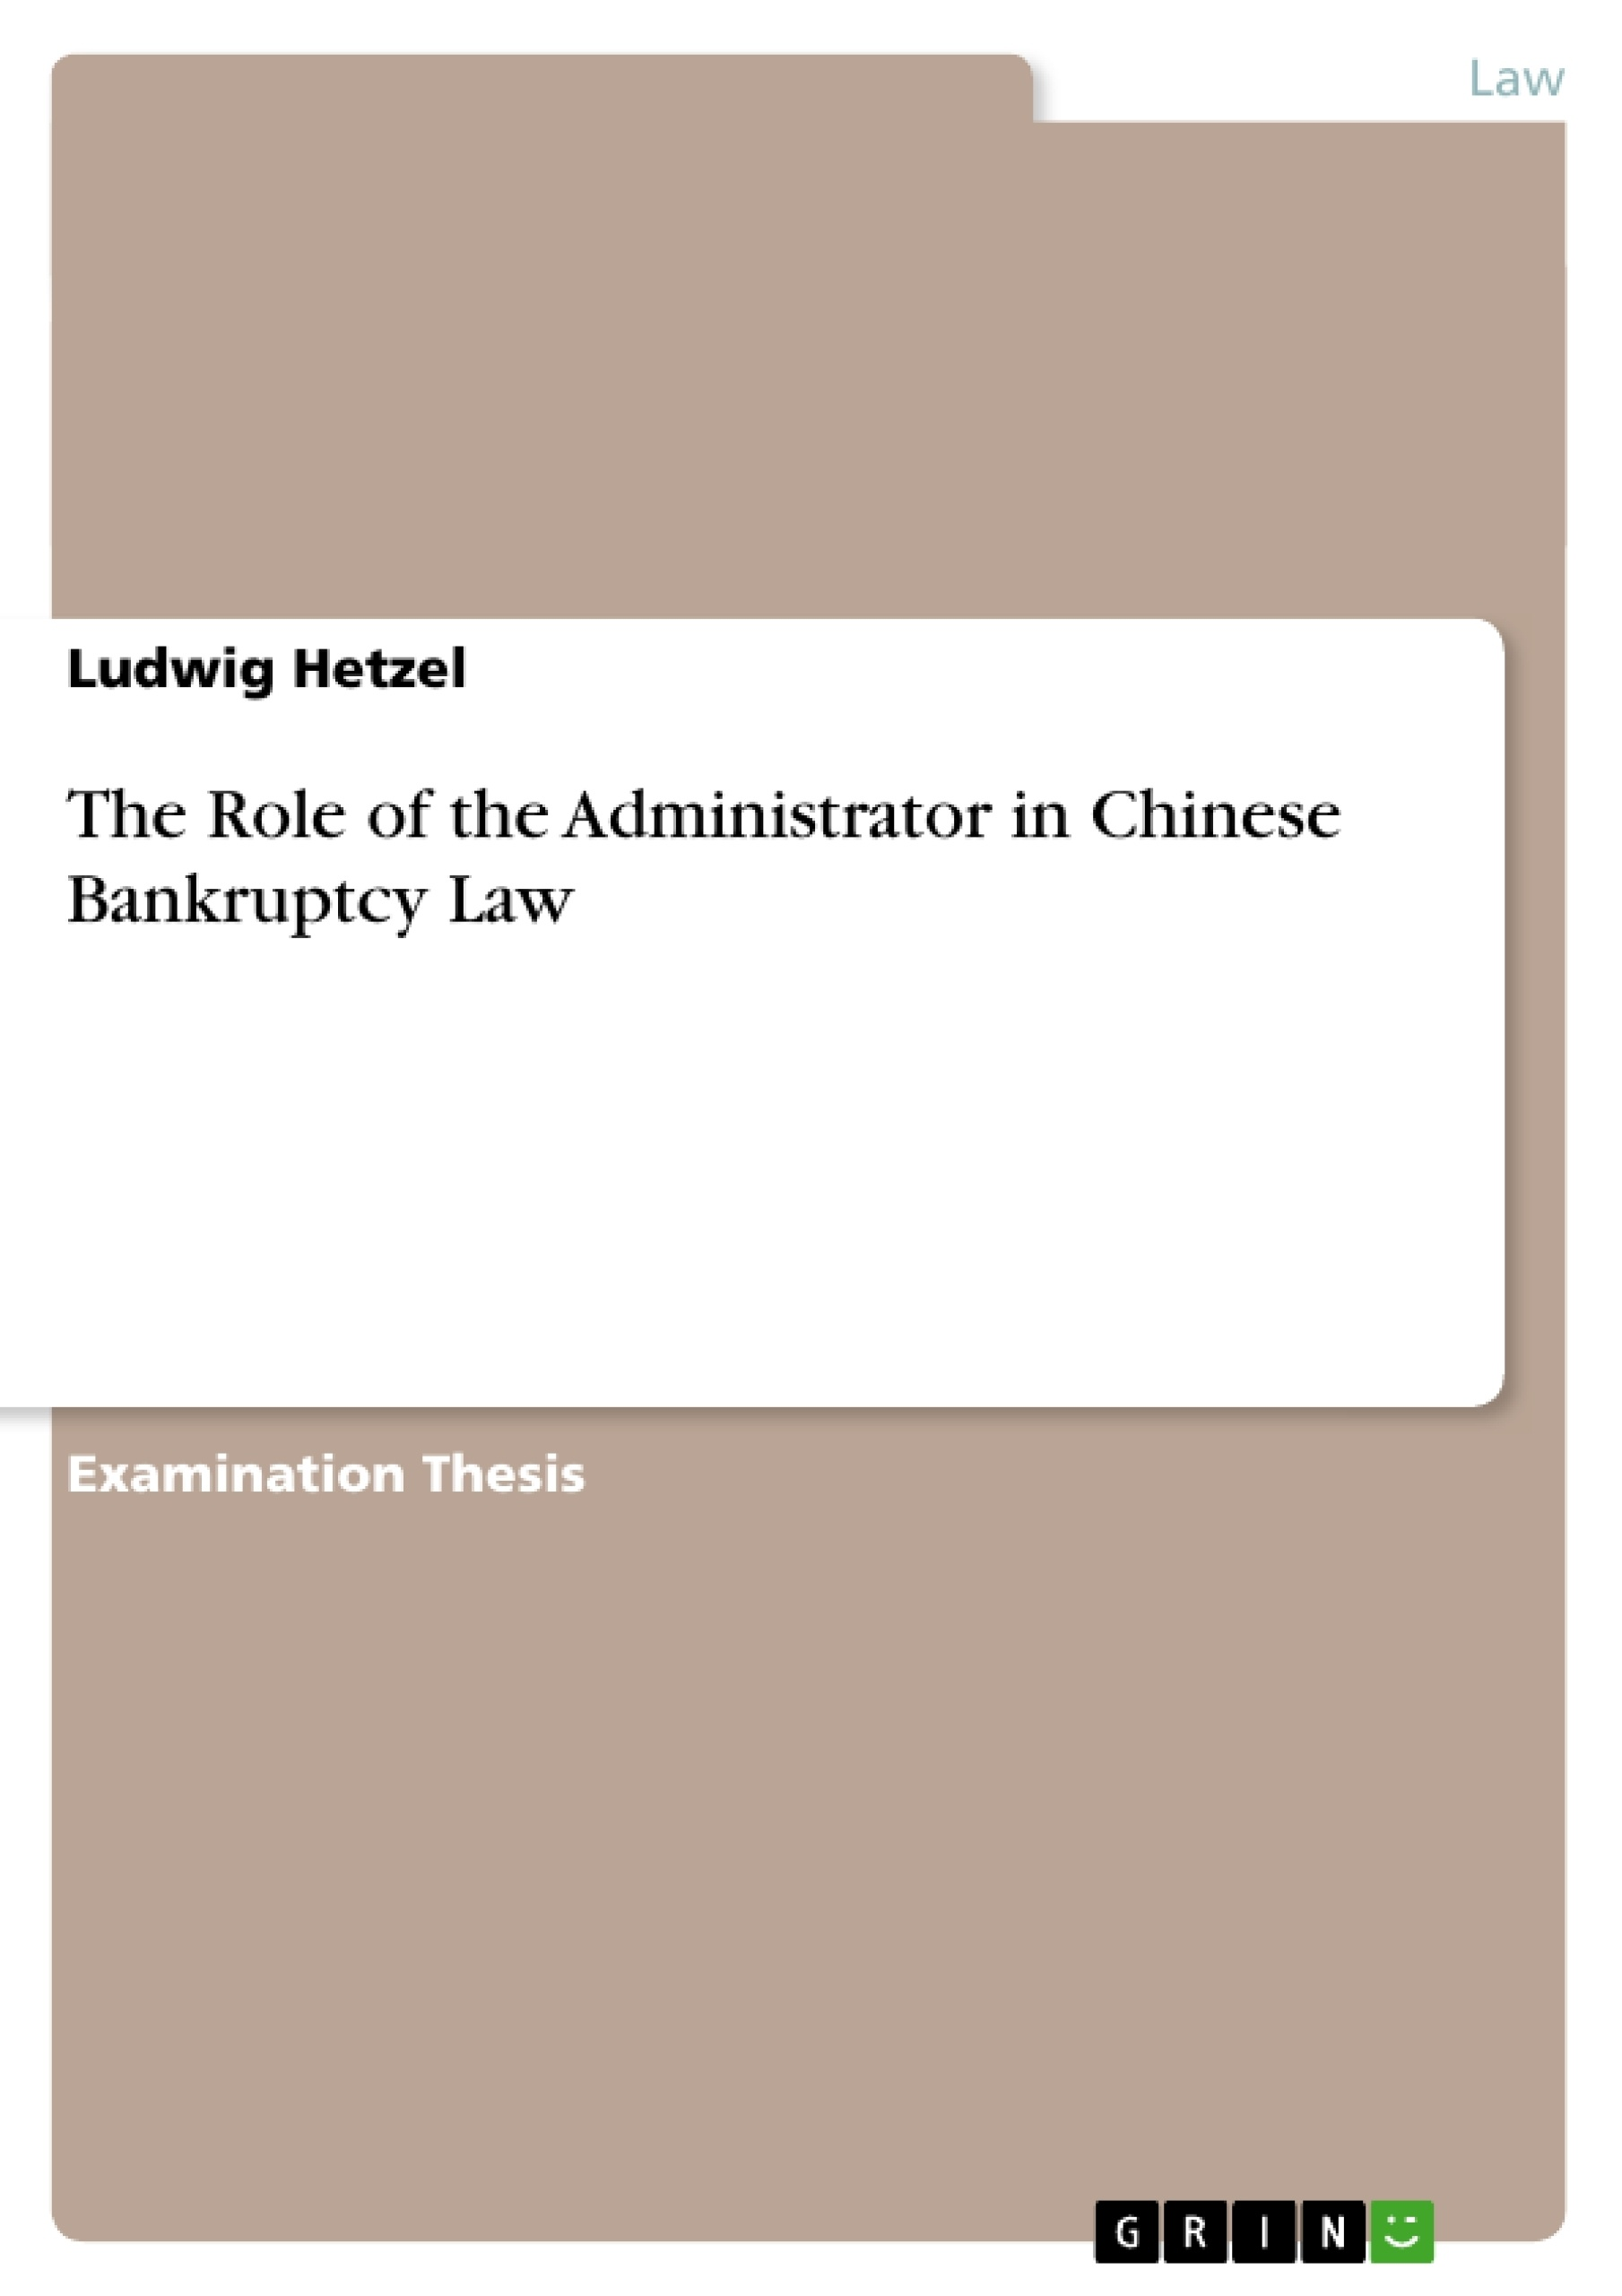 Title: The Role of the Administrator in Chinese Bankruptcy Law